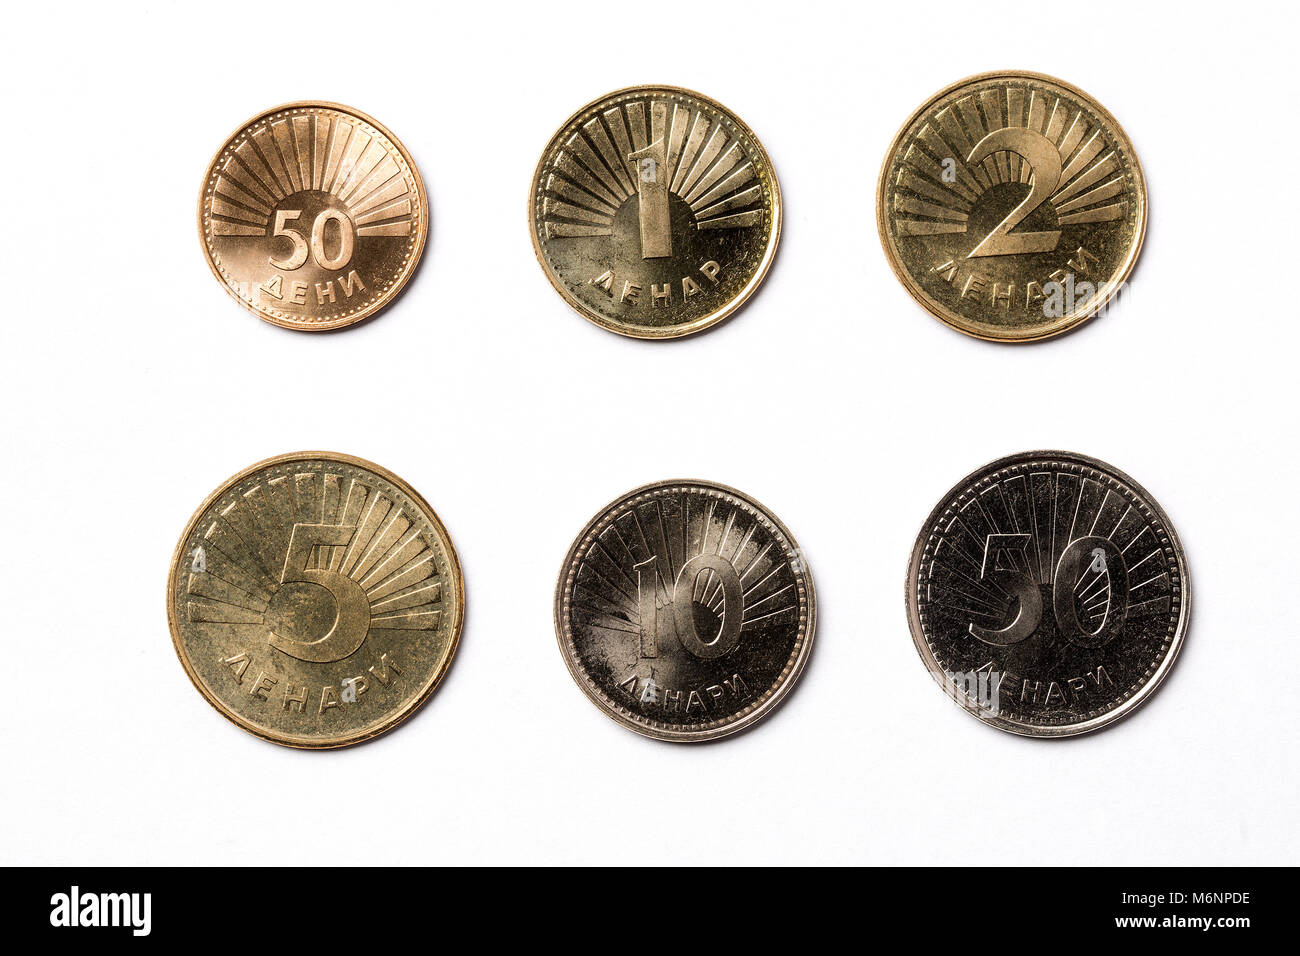 Macedonian coins on a white background - Stock Image